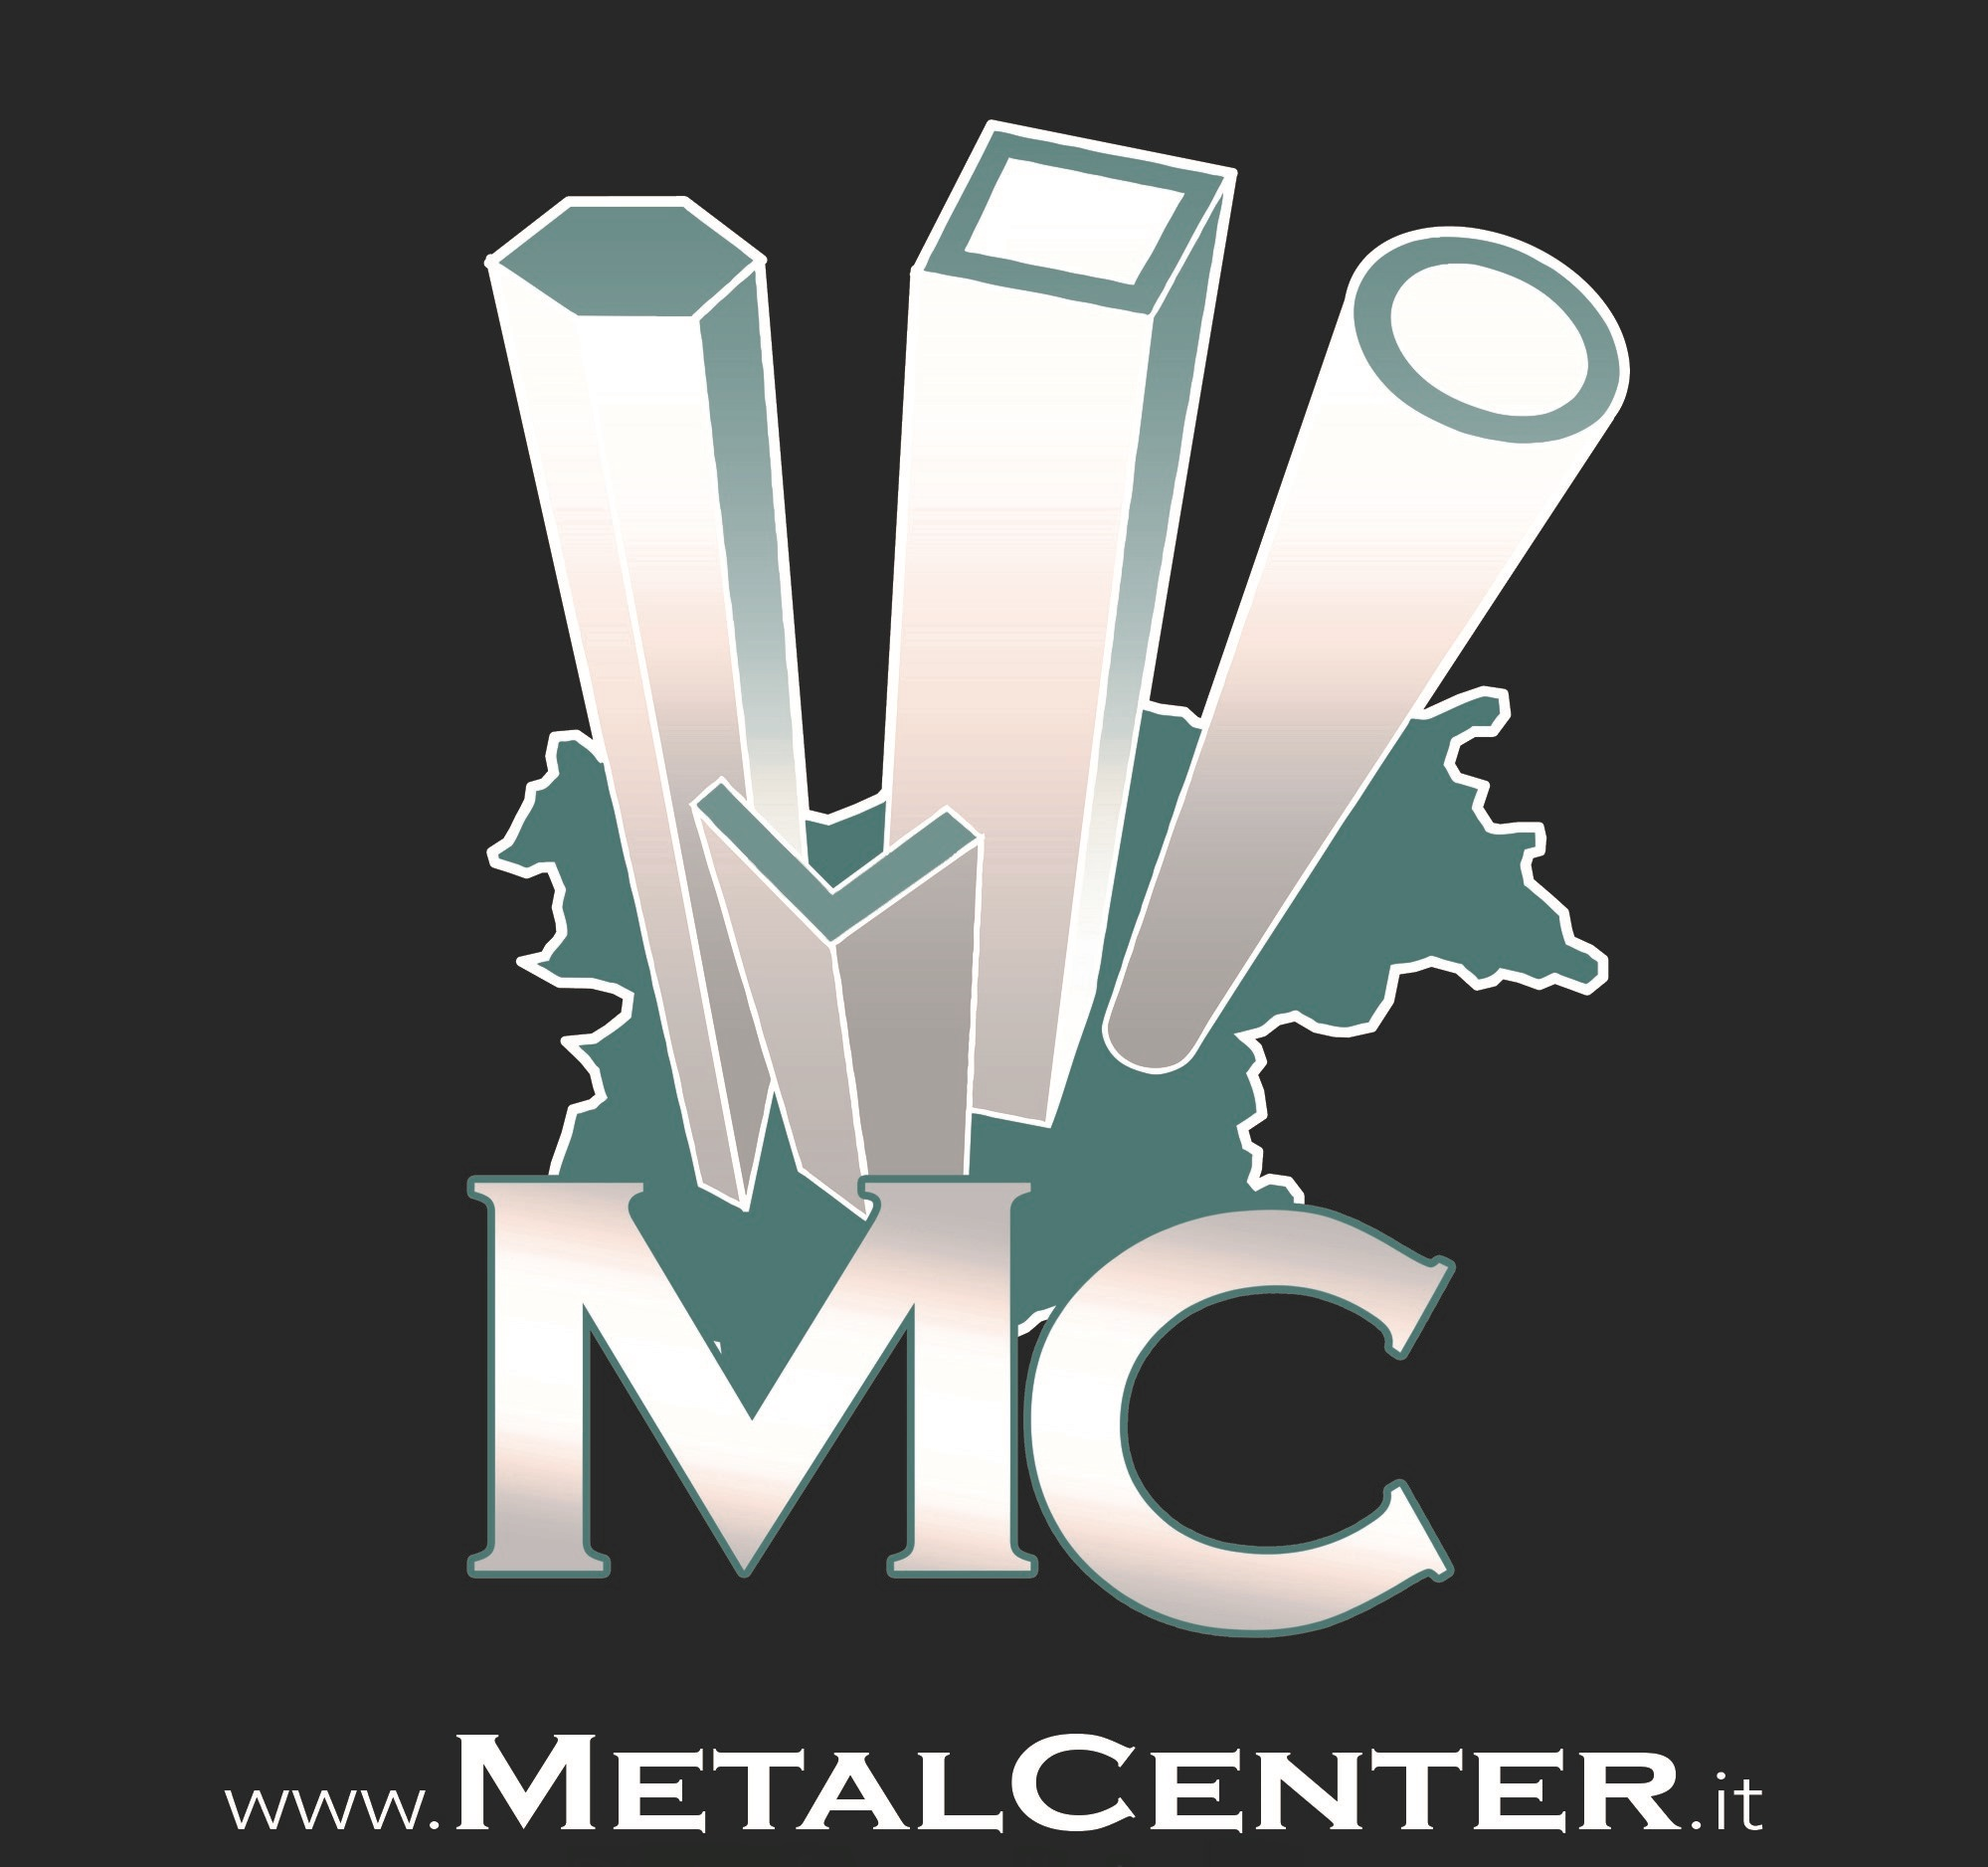 MetalCenter